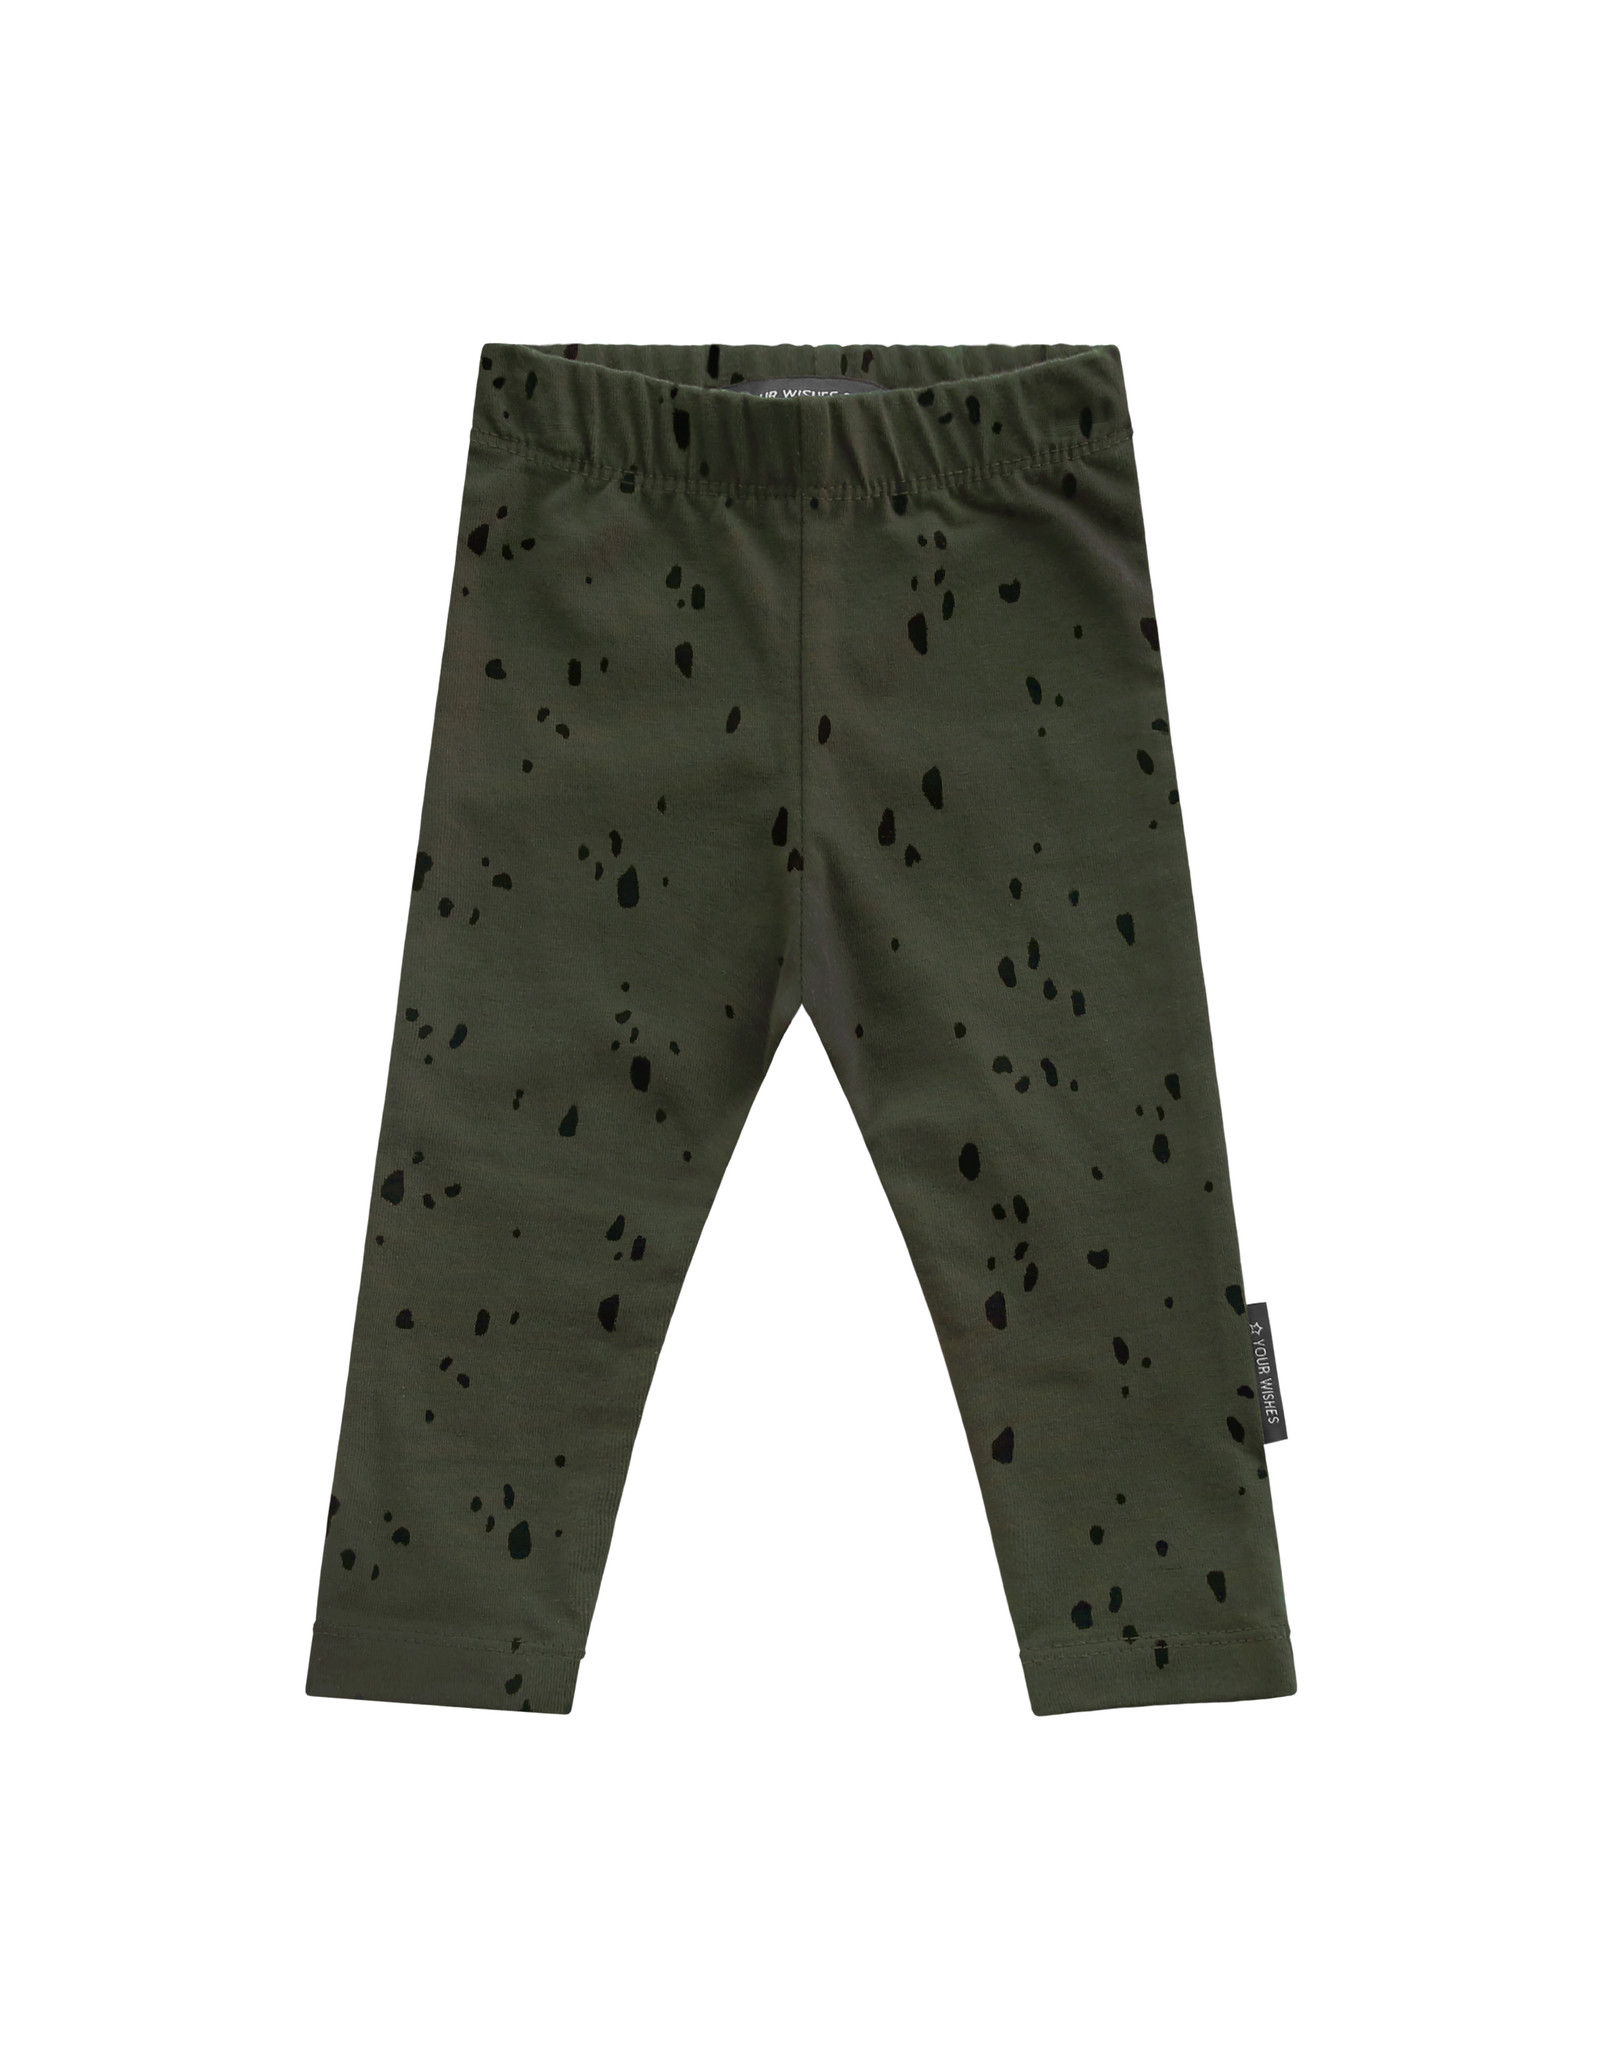 Your Wishes YW | Splatters | Legging | Desk Green